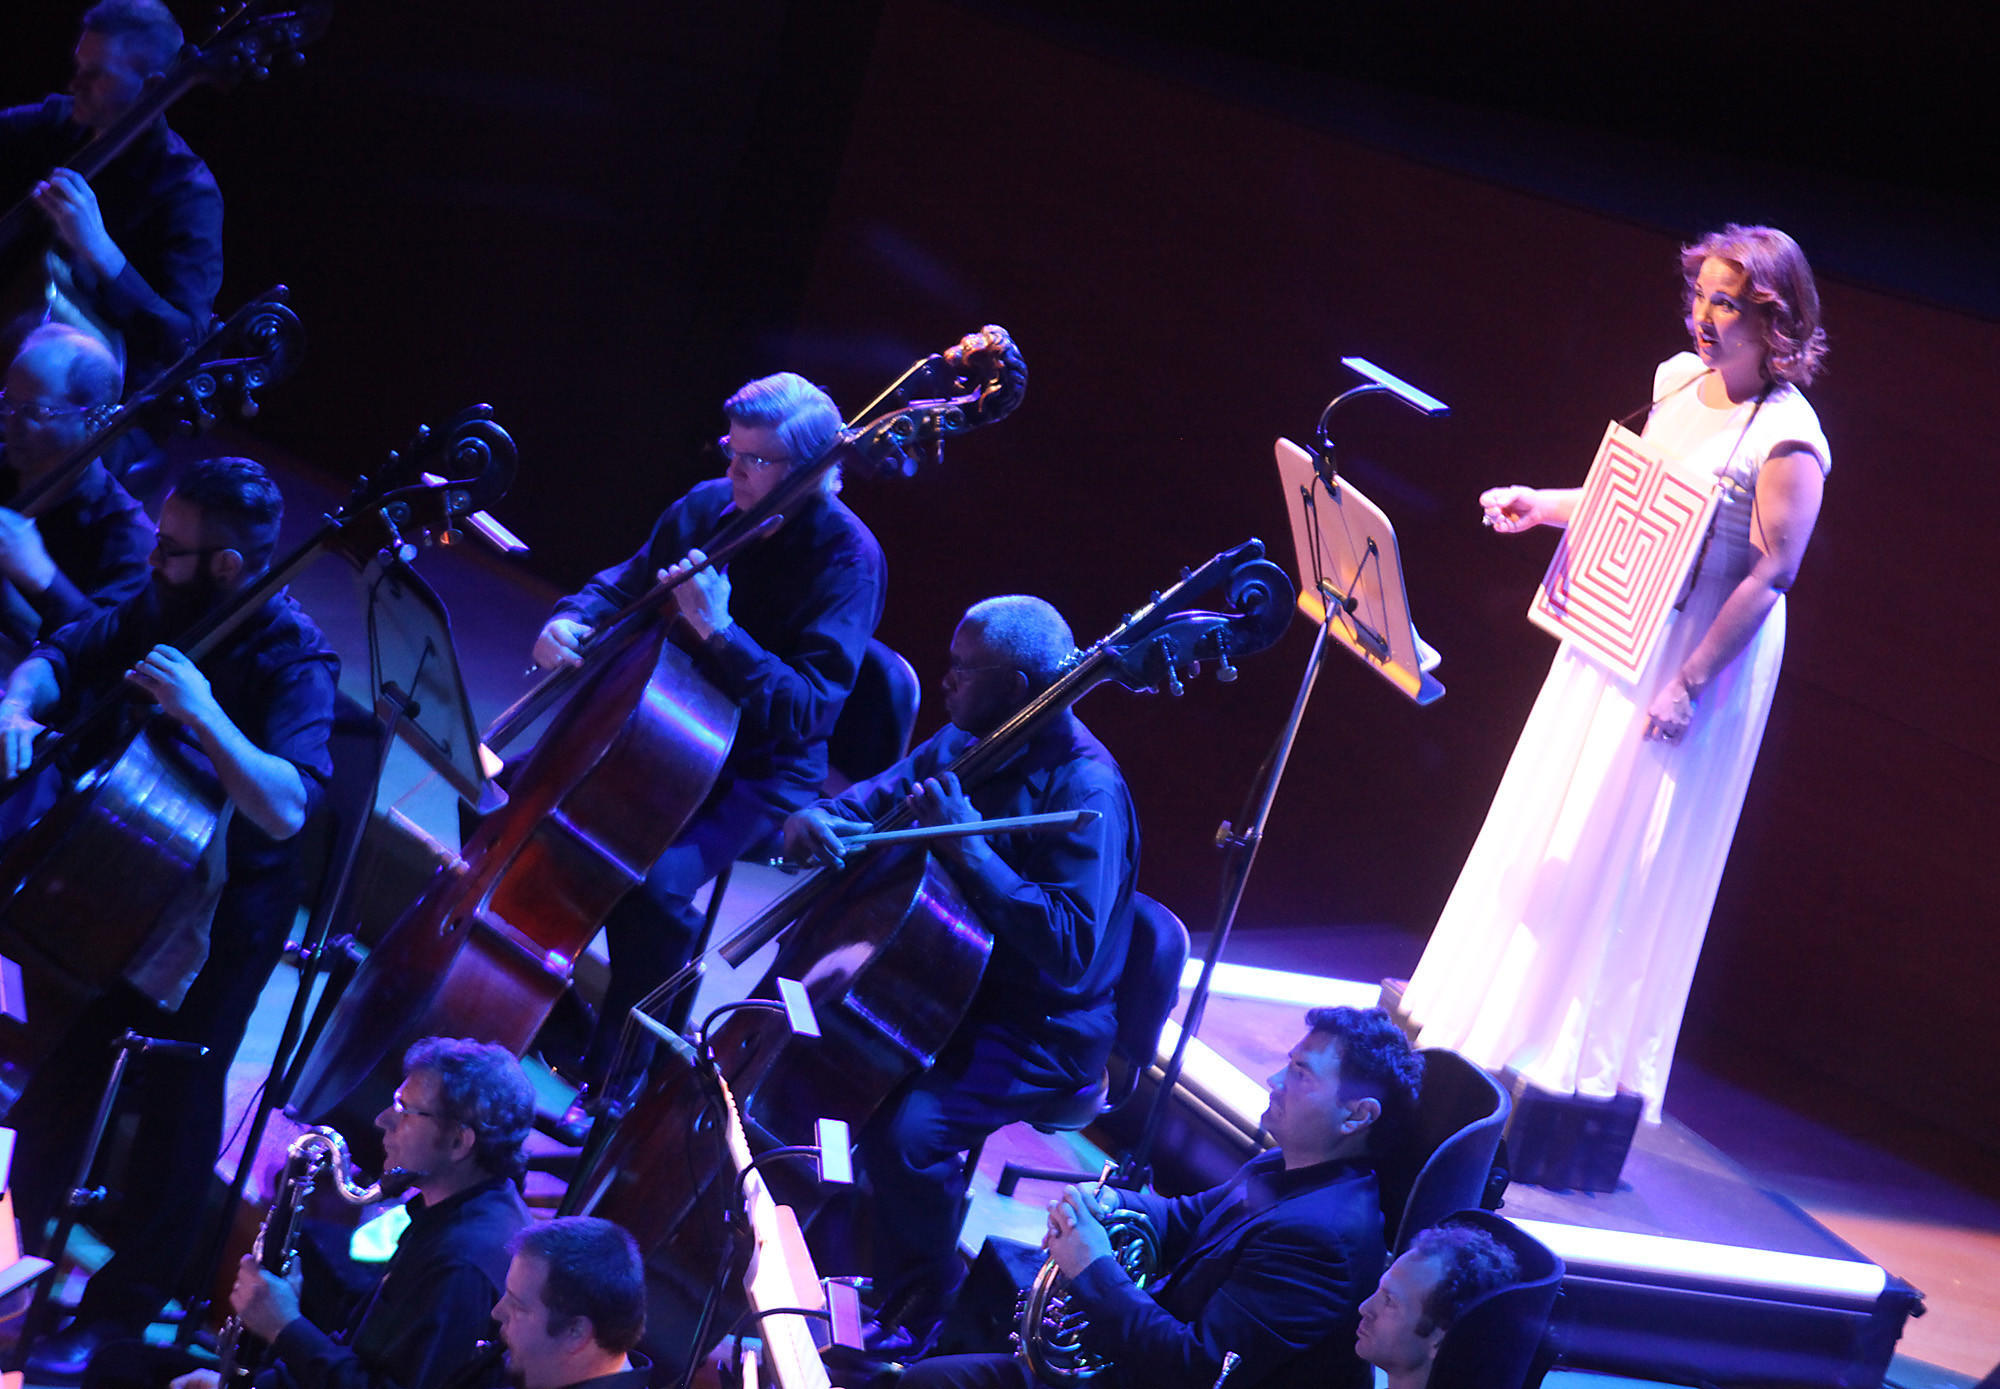 """Soloist Sasha Cooke, right, onstage with the L.A. Philharmonic in performance of Philip Glass' score to Rome section of Robert Wilson's """"The CIVIL warS."""""""